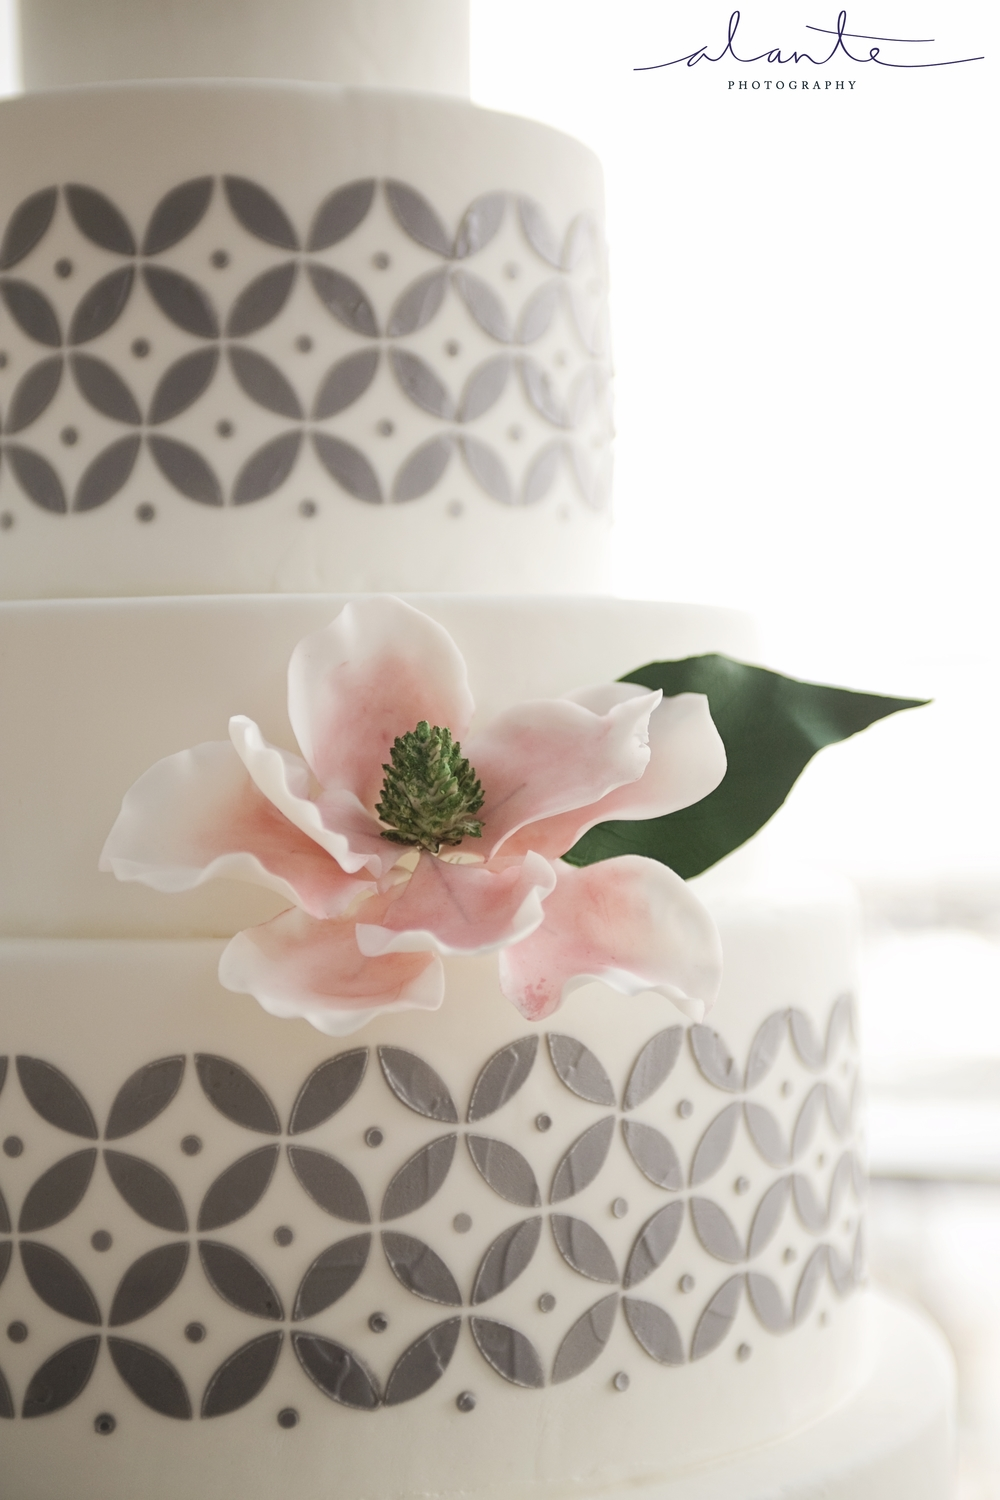 Sugar Magnolia and leaf on a geometric grey-and-white cake. Image courtesy of Alante Photography.